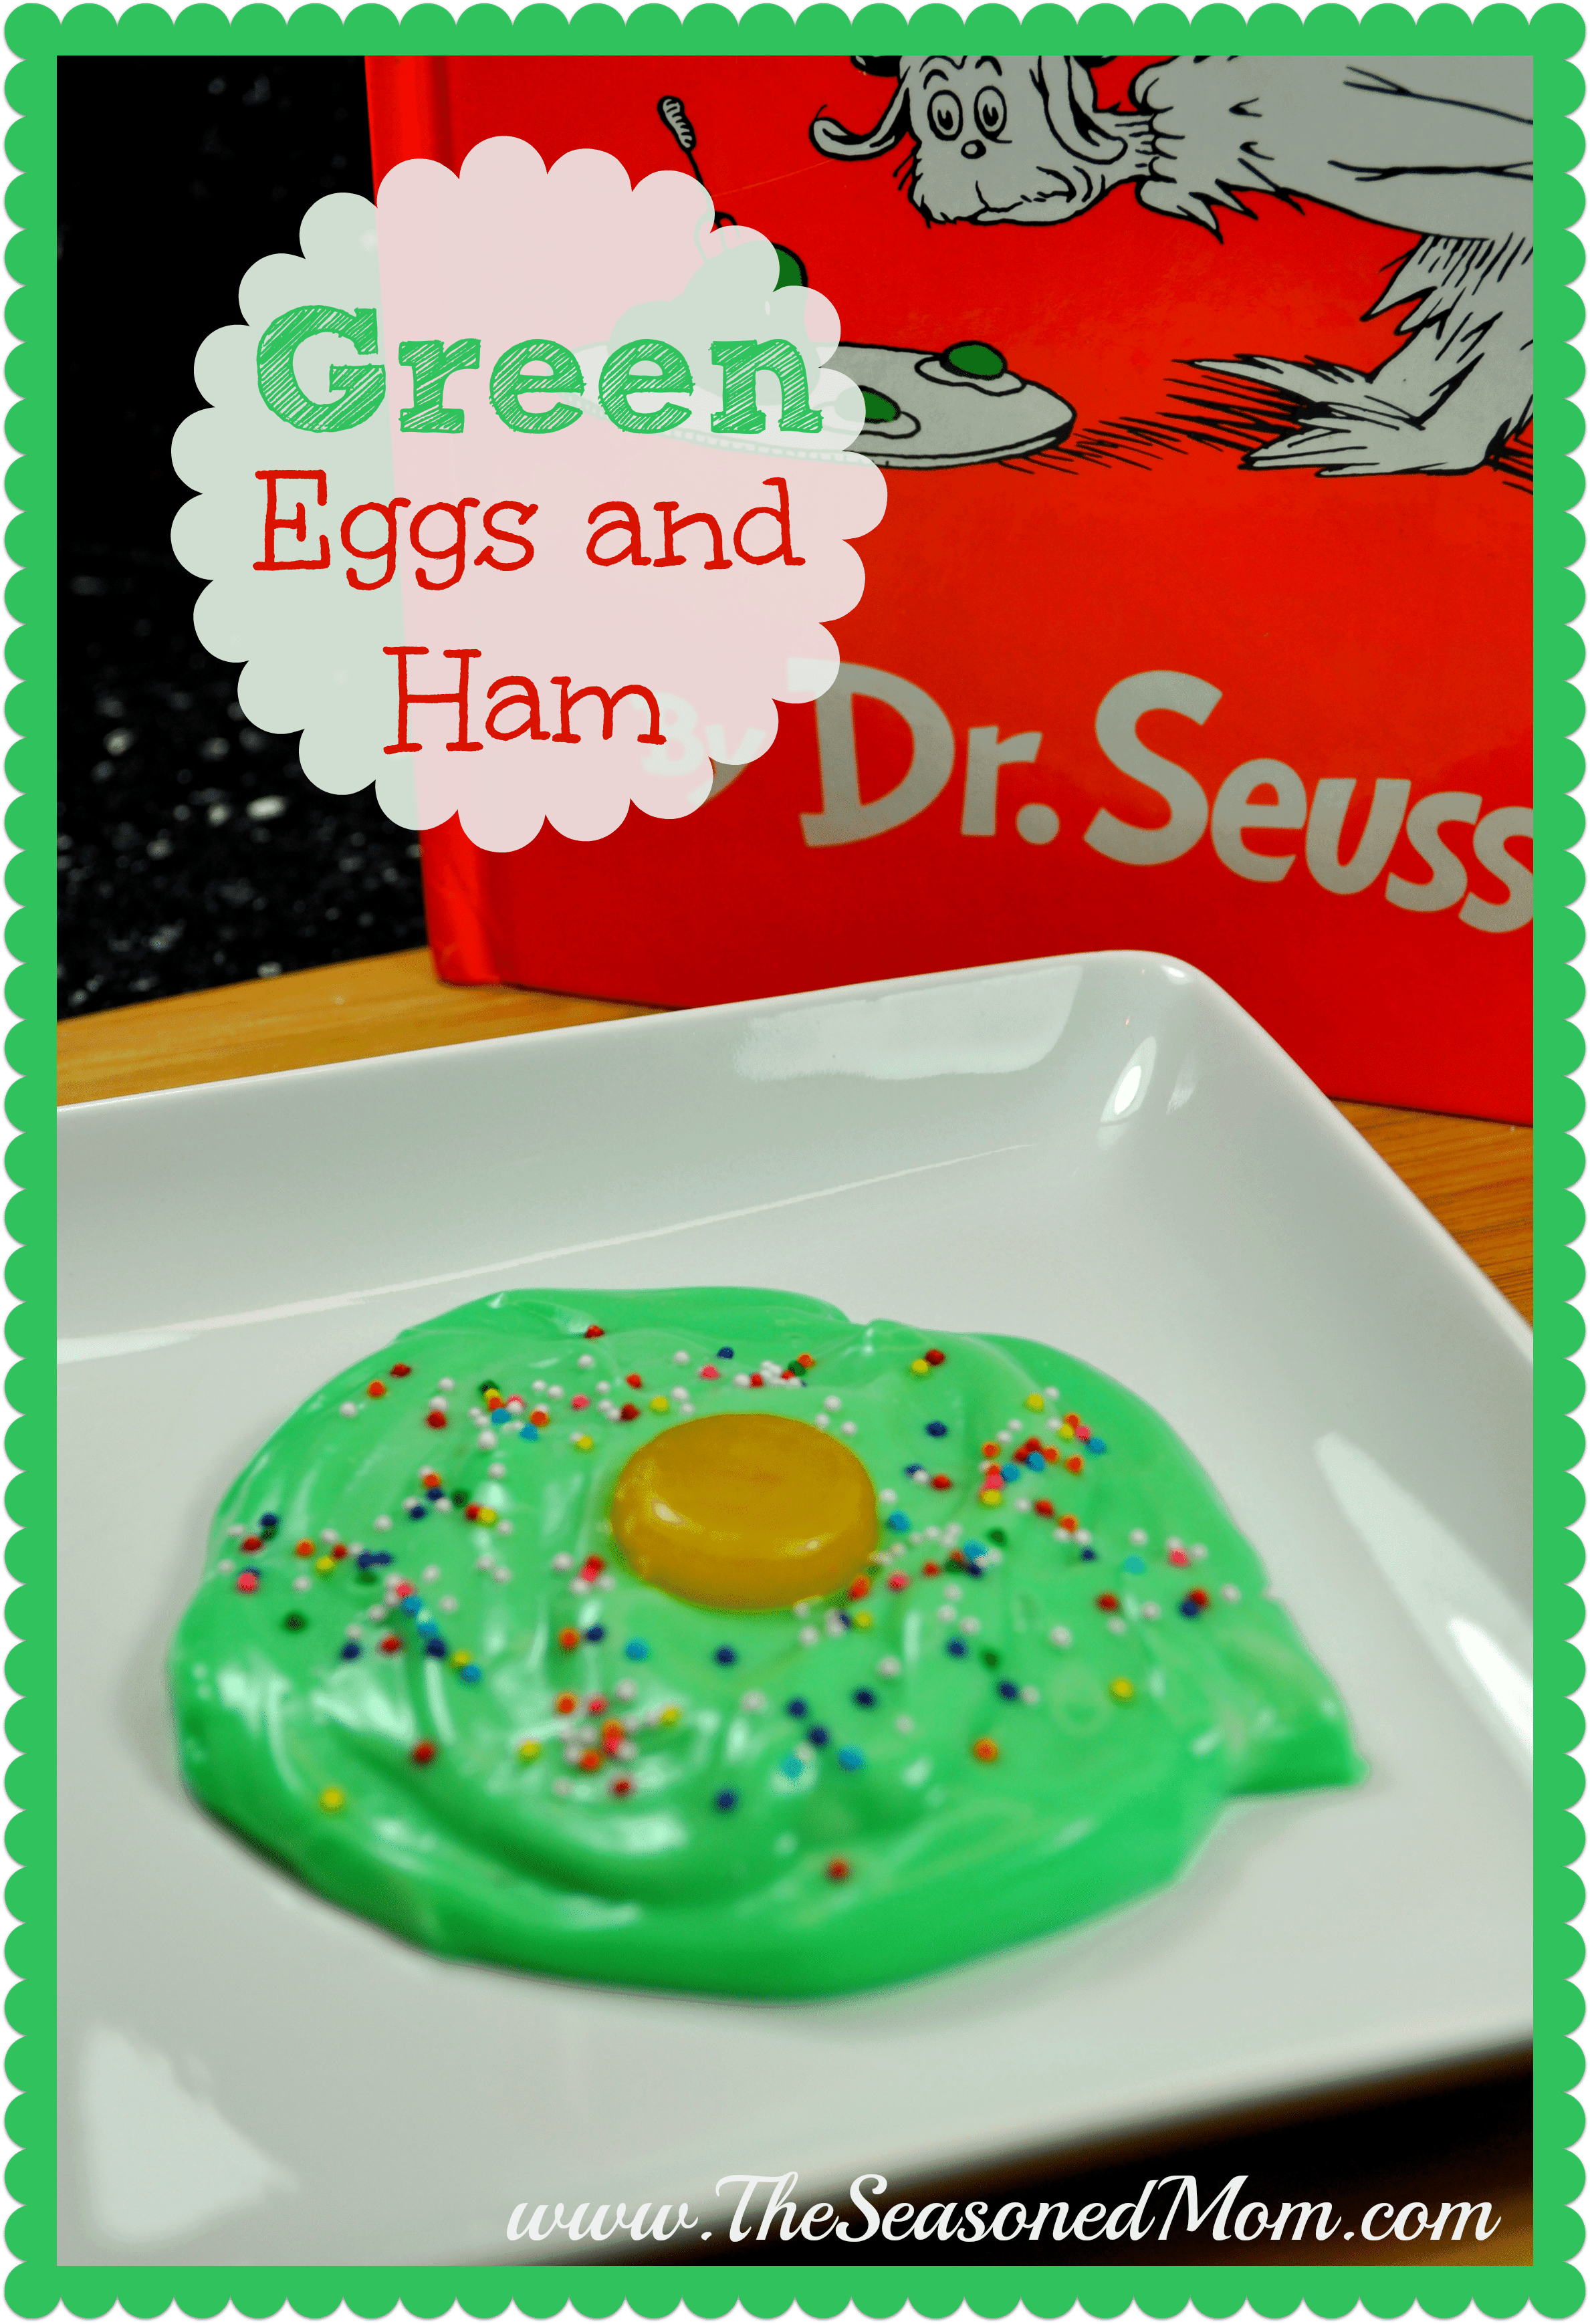 Dr. Seuss's Green Eggs and Ham Snack - The Seasoned Mom